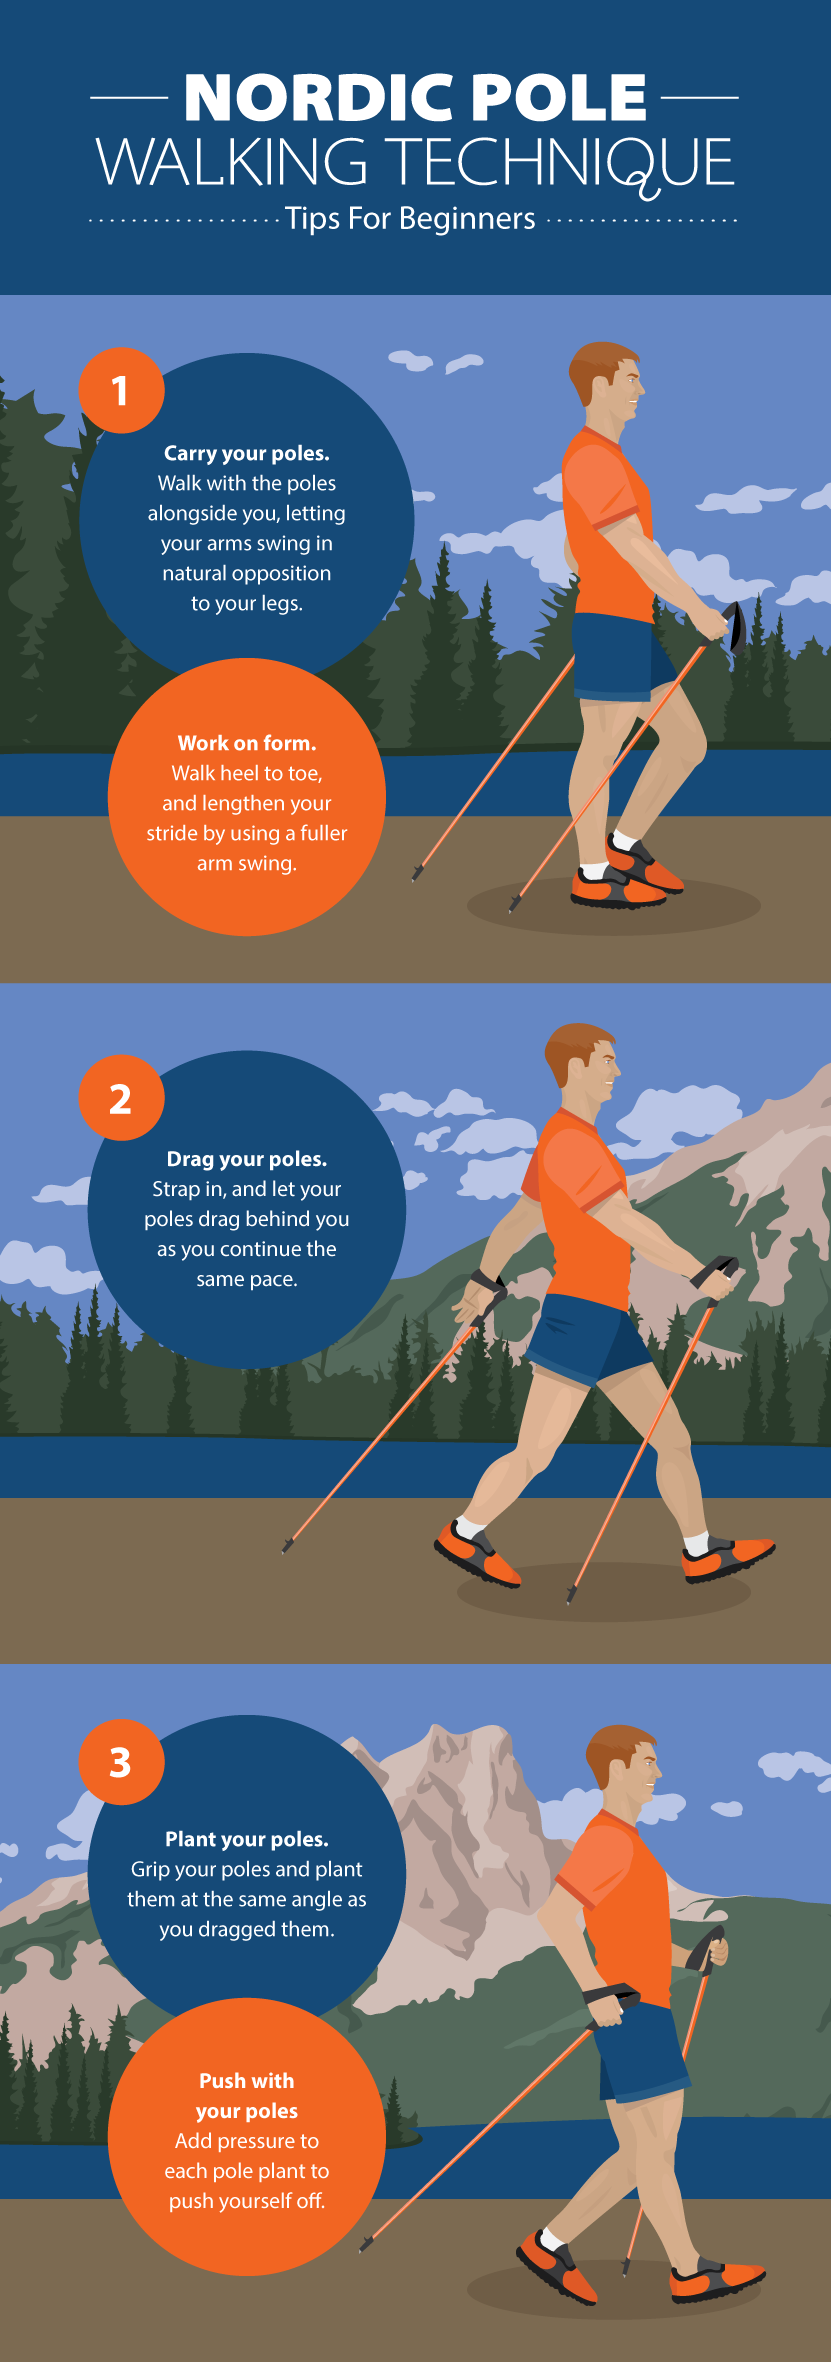 Nordic Pole Walking Technique - Beginner's Guide to Nordic Pole Walking